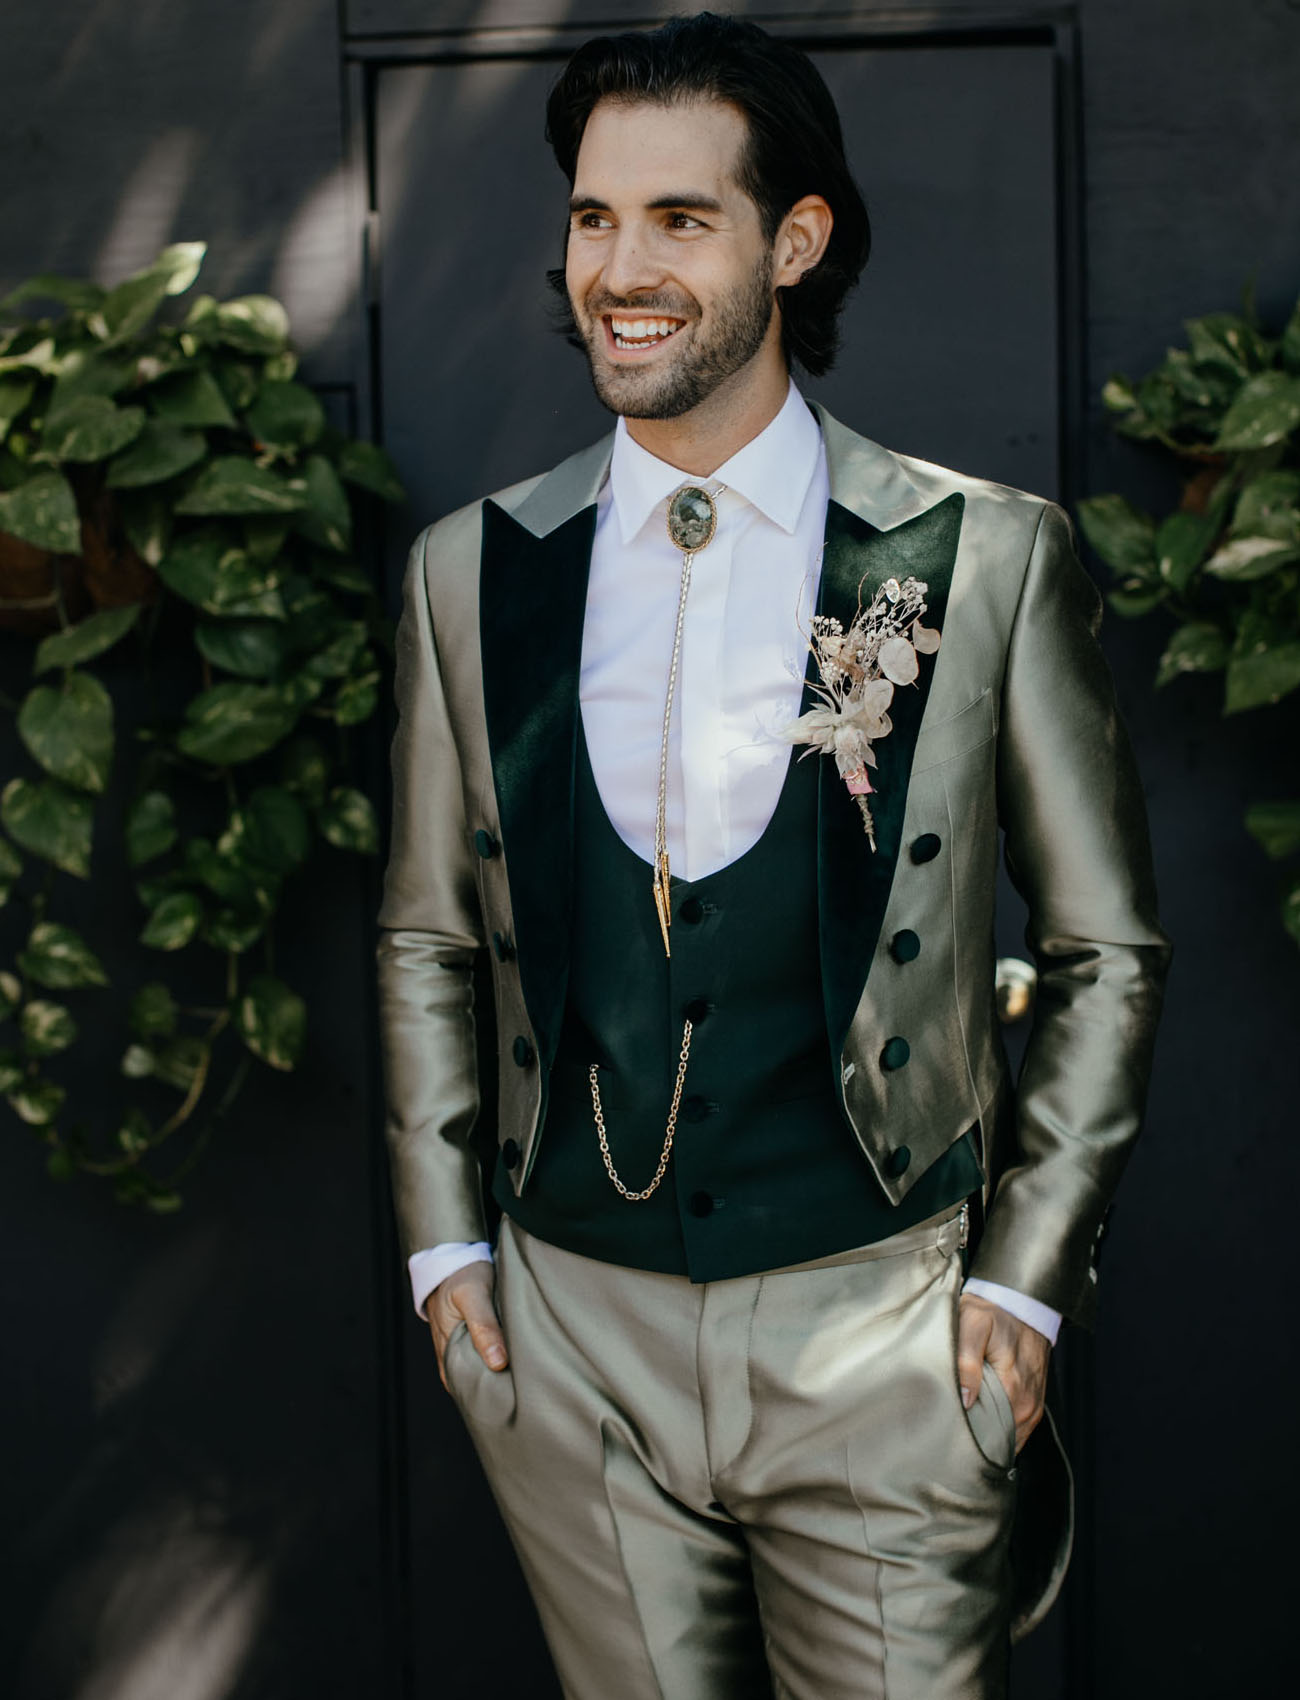 The groom was wearing a green custom made three piece suit with a bejeweled tie